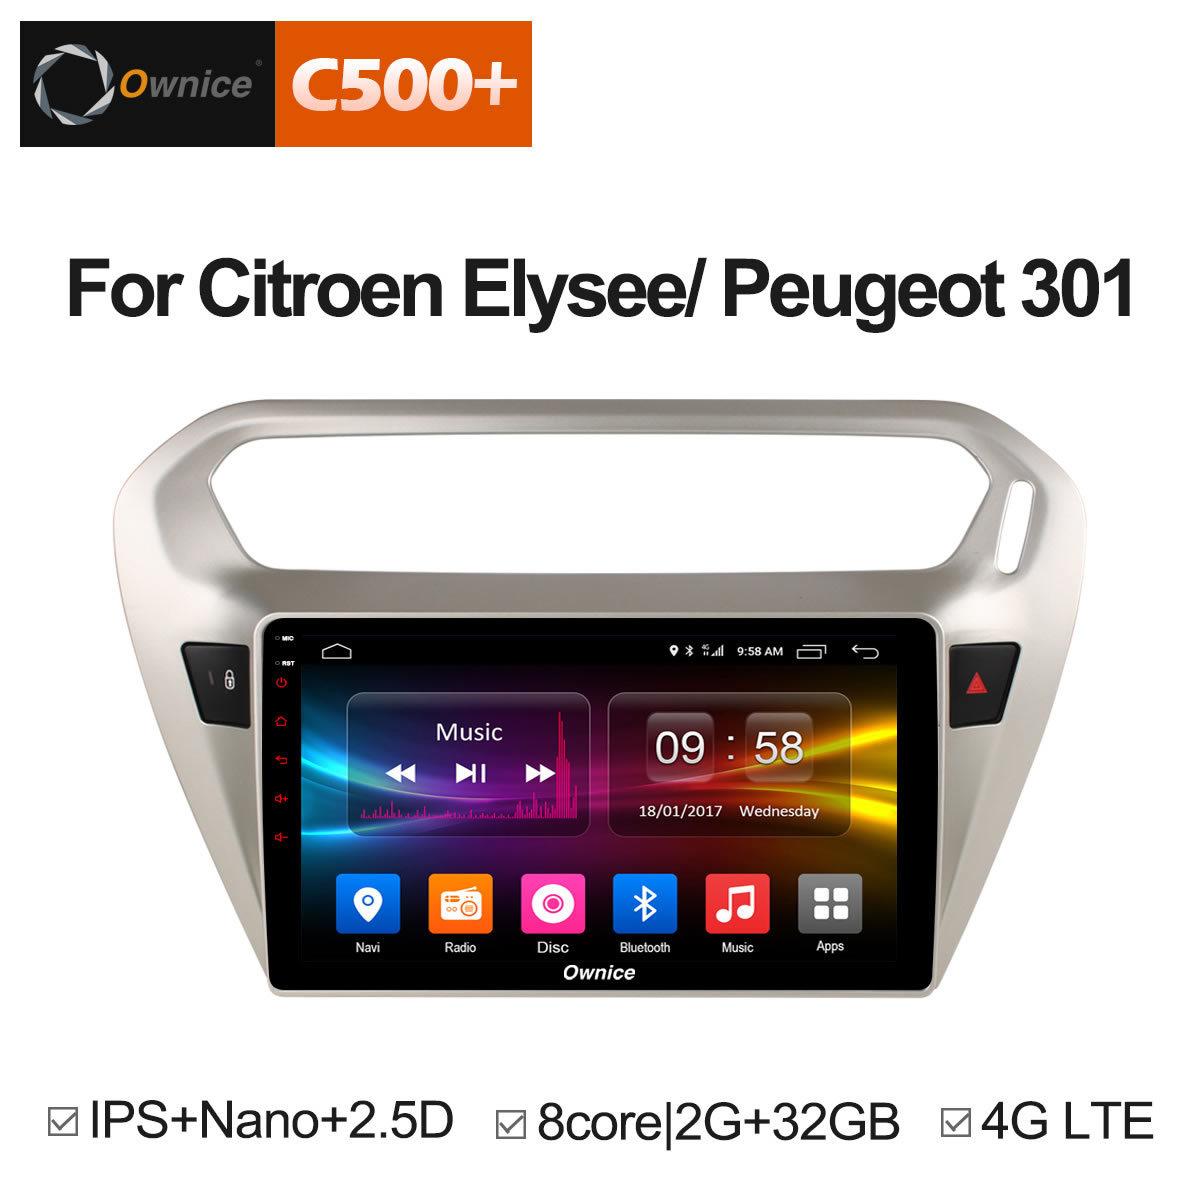 Ownice C500+ G10 Android 8.1 Eight core Car radio Player <font><b>gps</b></font> navi <font><b>for</b></font> <font><b>Peugeot</b></font> <font><b>301</b></font> Citroen Elysee 2014 2015 2016 2GB RAM 32GB ROM image